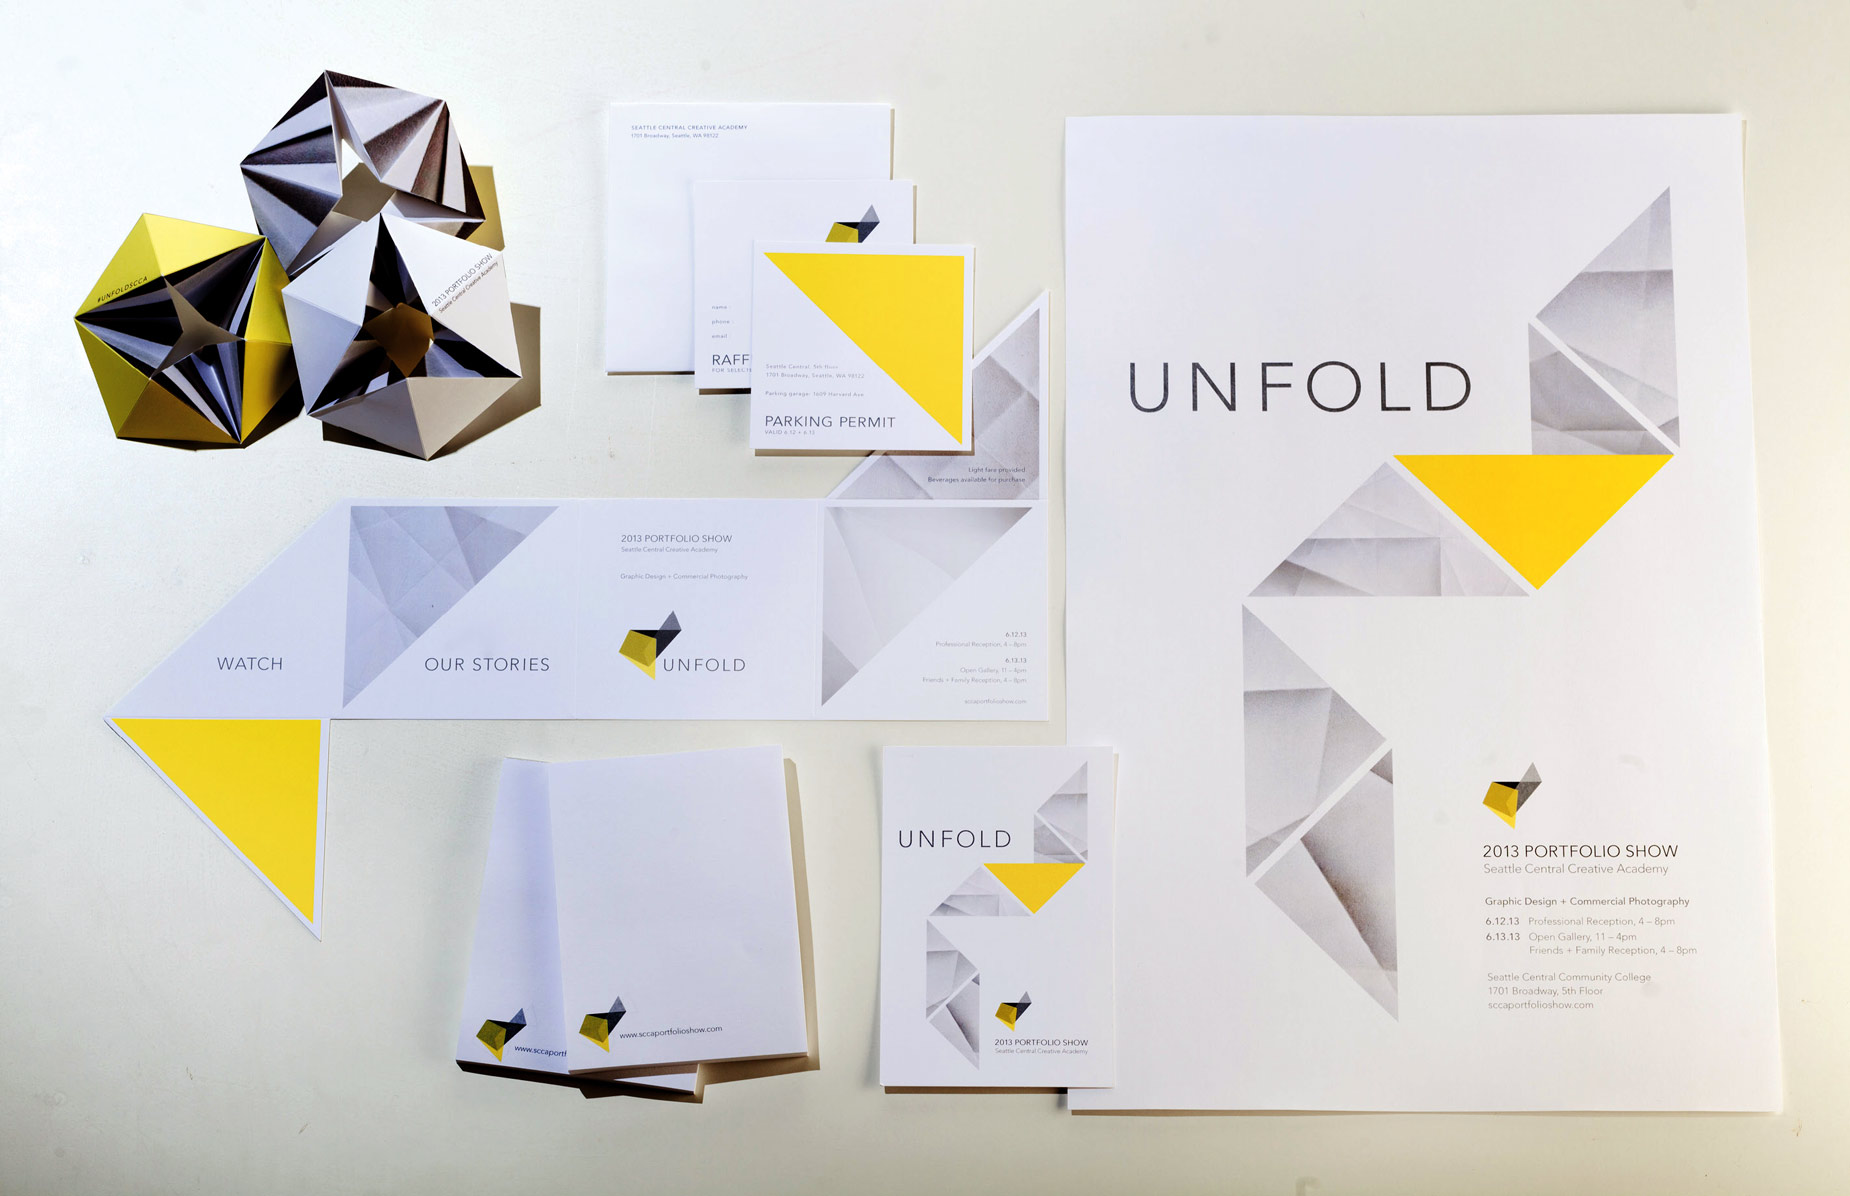 Unfold collaterol package